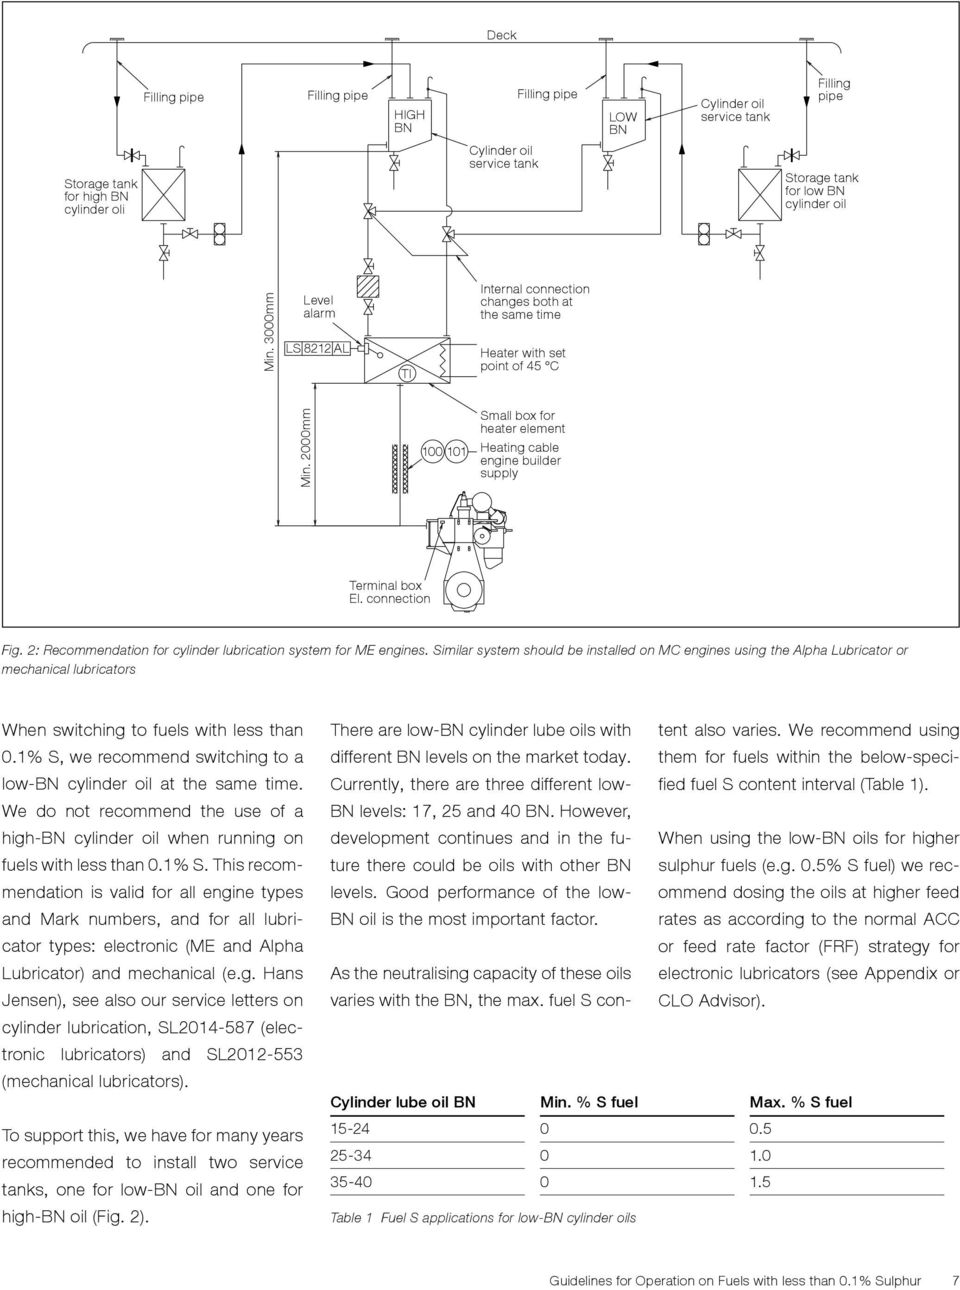 Guidelines For Operation On Fuels With Less Than 01 Sulphur Pdf Engine Oiling System Diagram 2000mm 100 101 Small Box Heater Element Heating Cable Builder Supply Terminal El